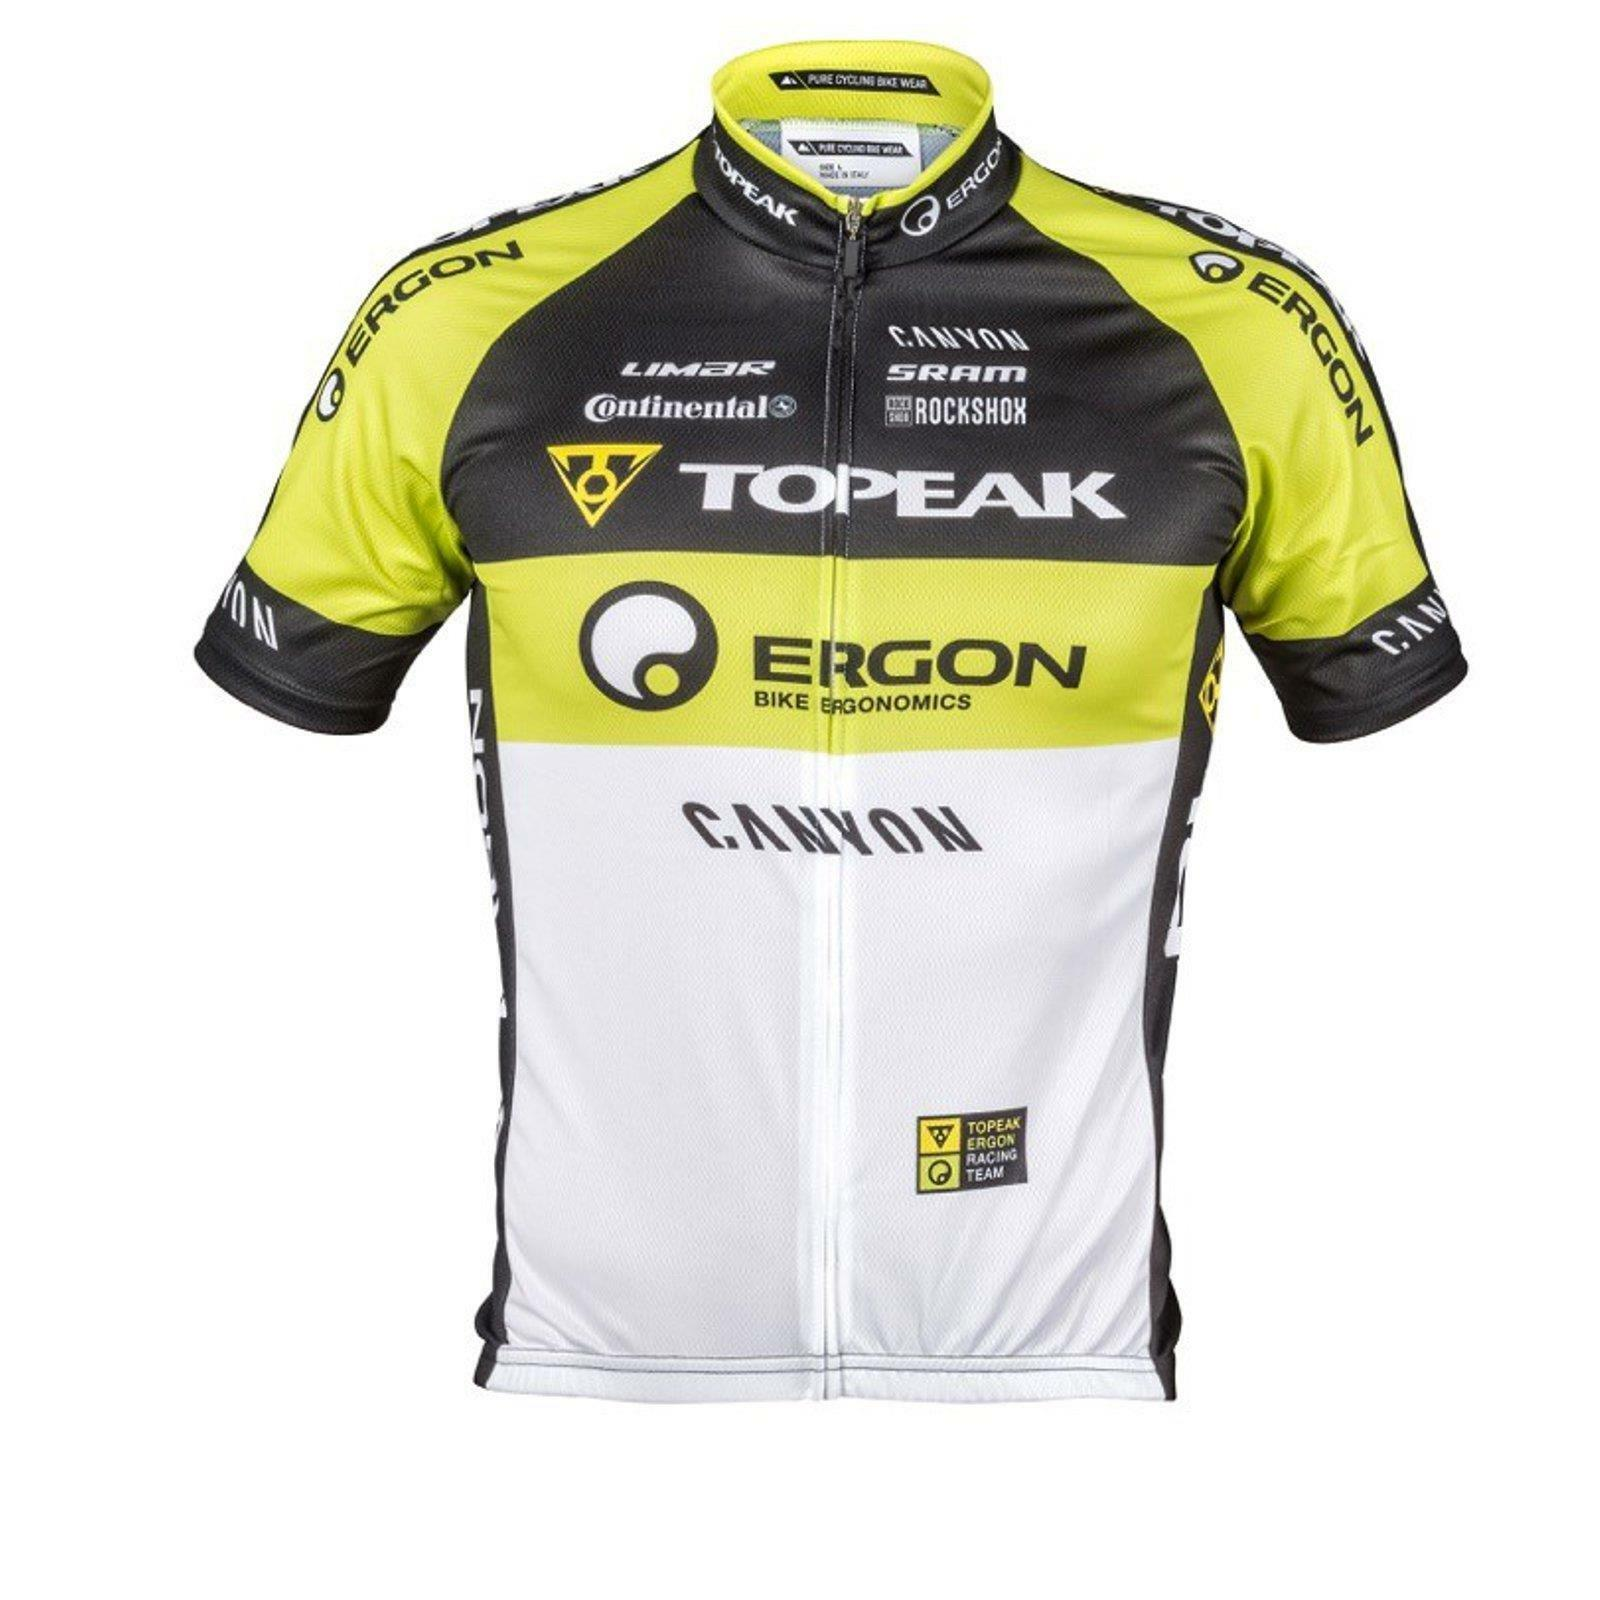 Topeak Ergon Replica Jersey Team Jersey 2014  Bicycle Cycling Breathable Short  best reputation